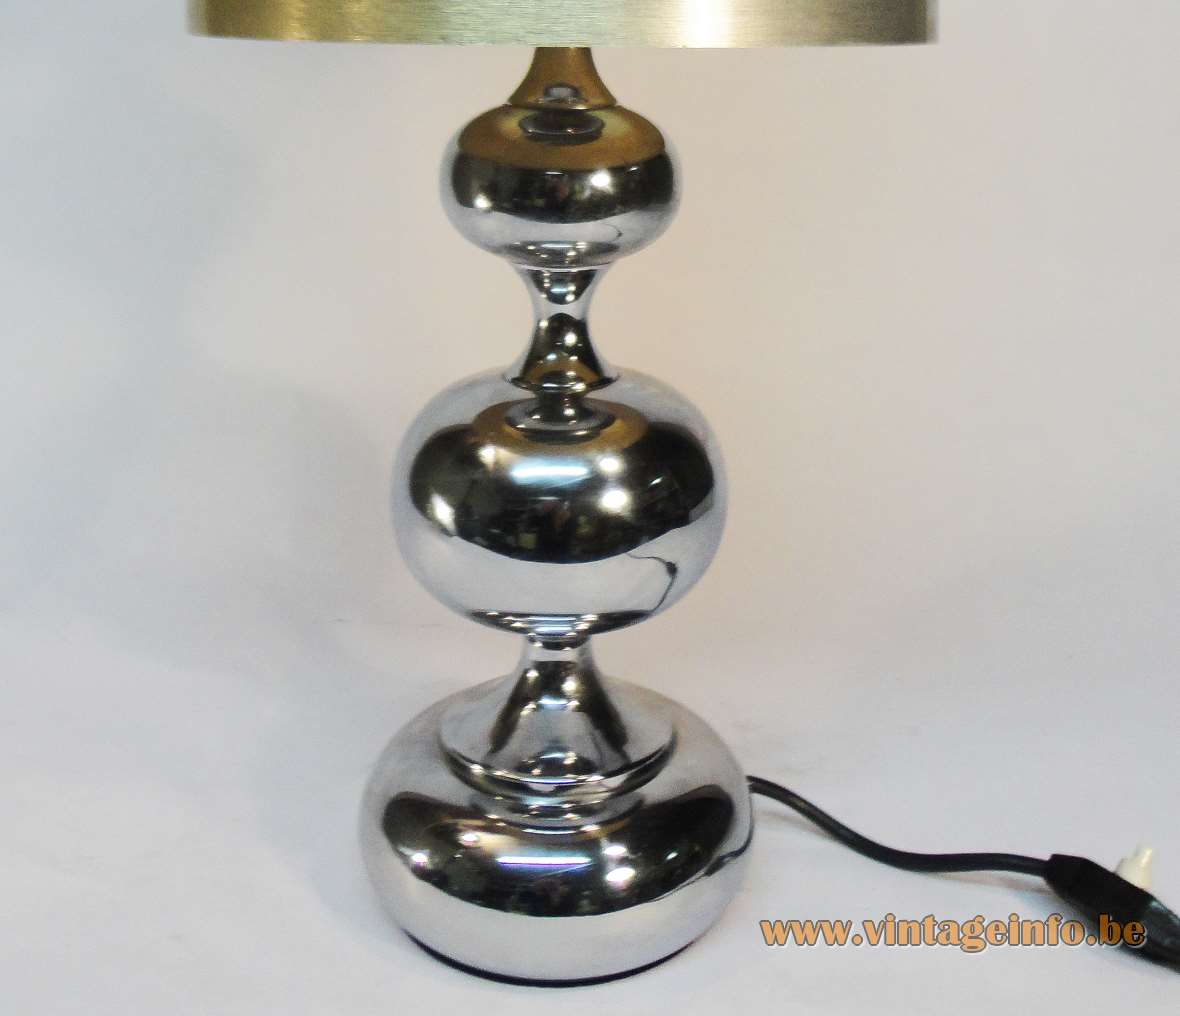 Hustadt-Leuchten chrome globes table lamp Maison Barbier style 3 oval globes fabric lampshade 1970s Germany